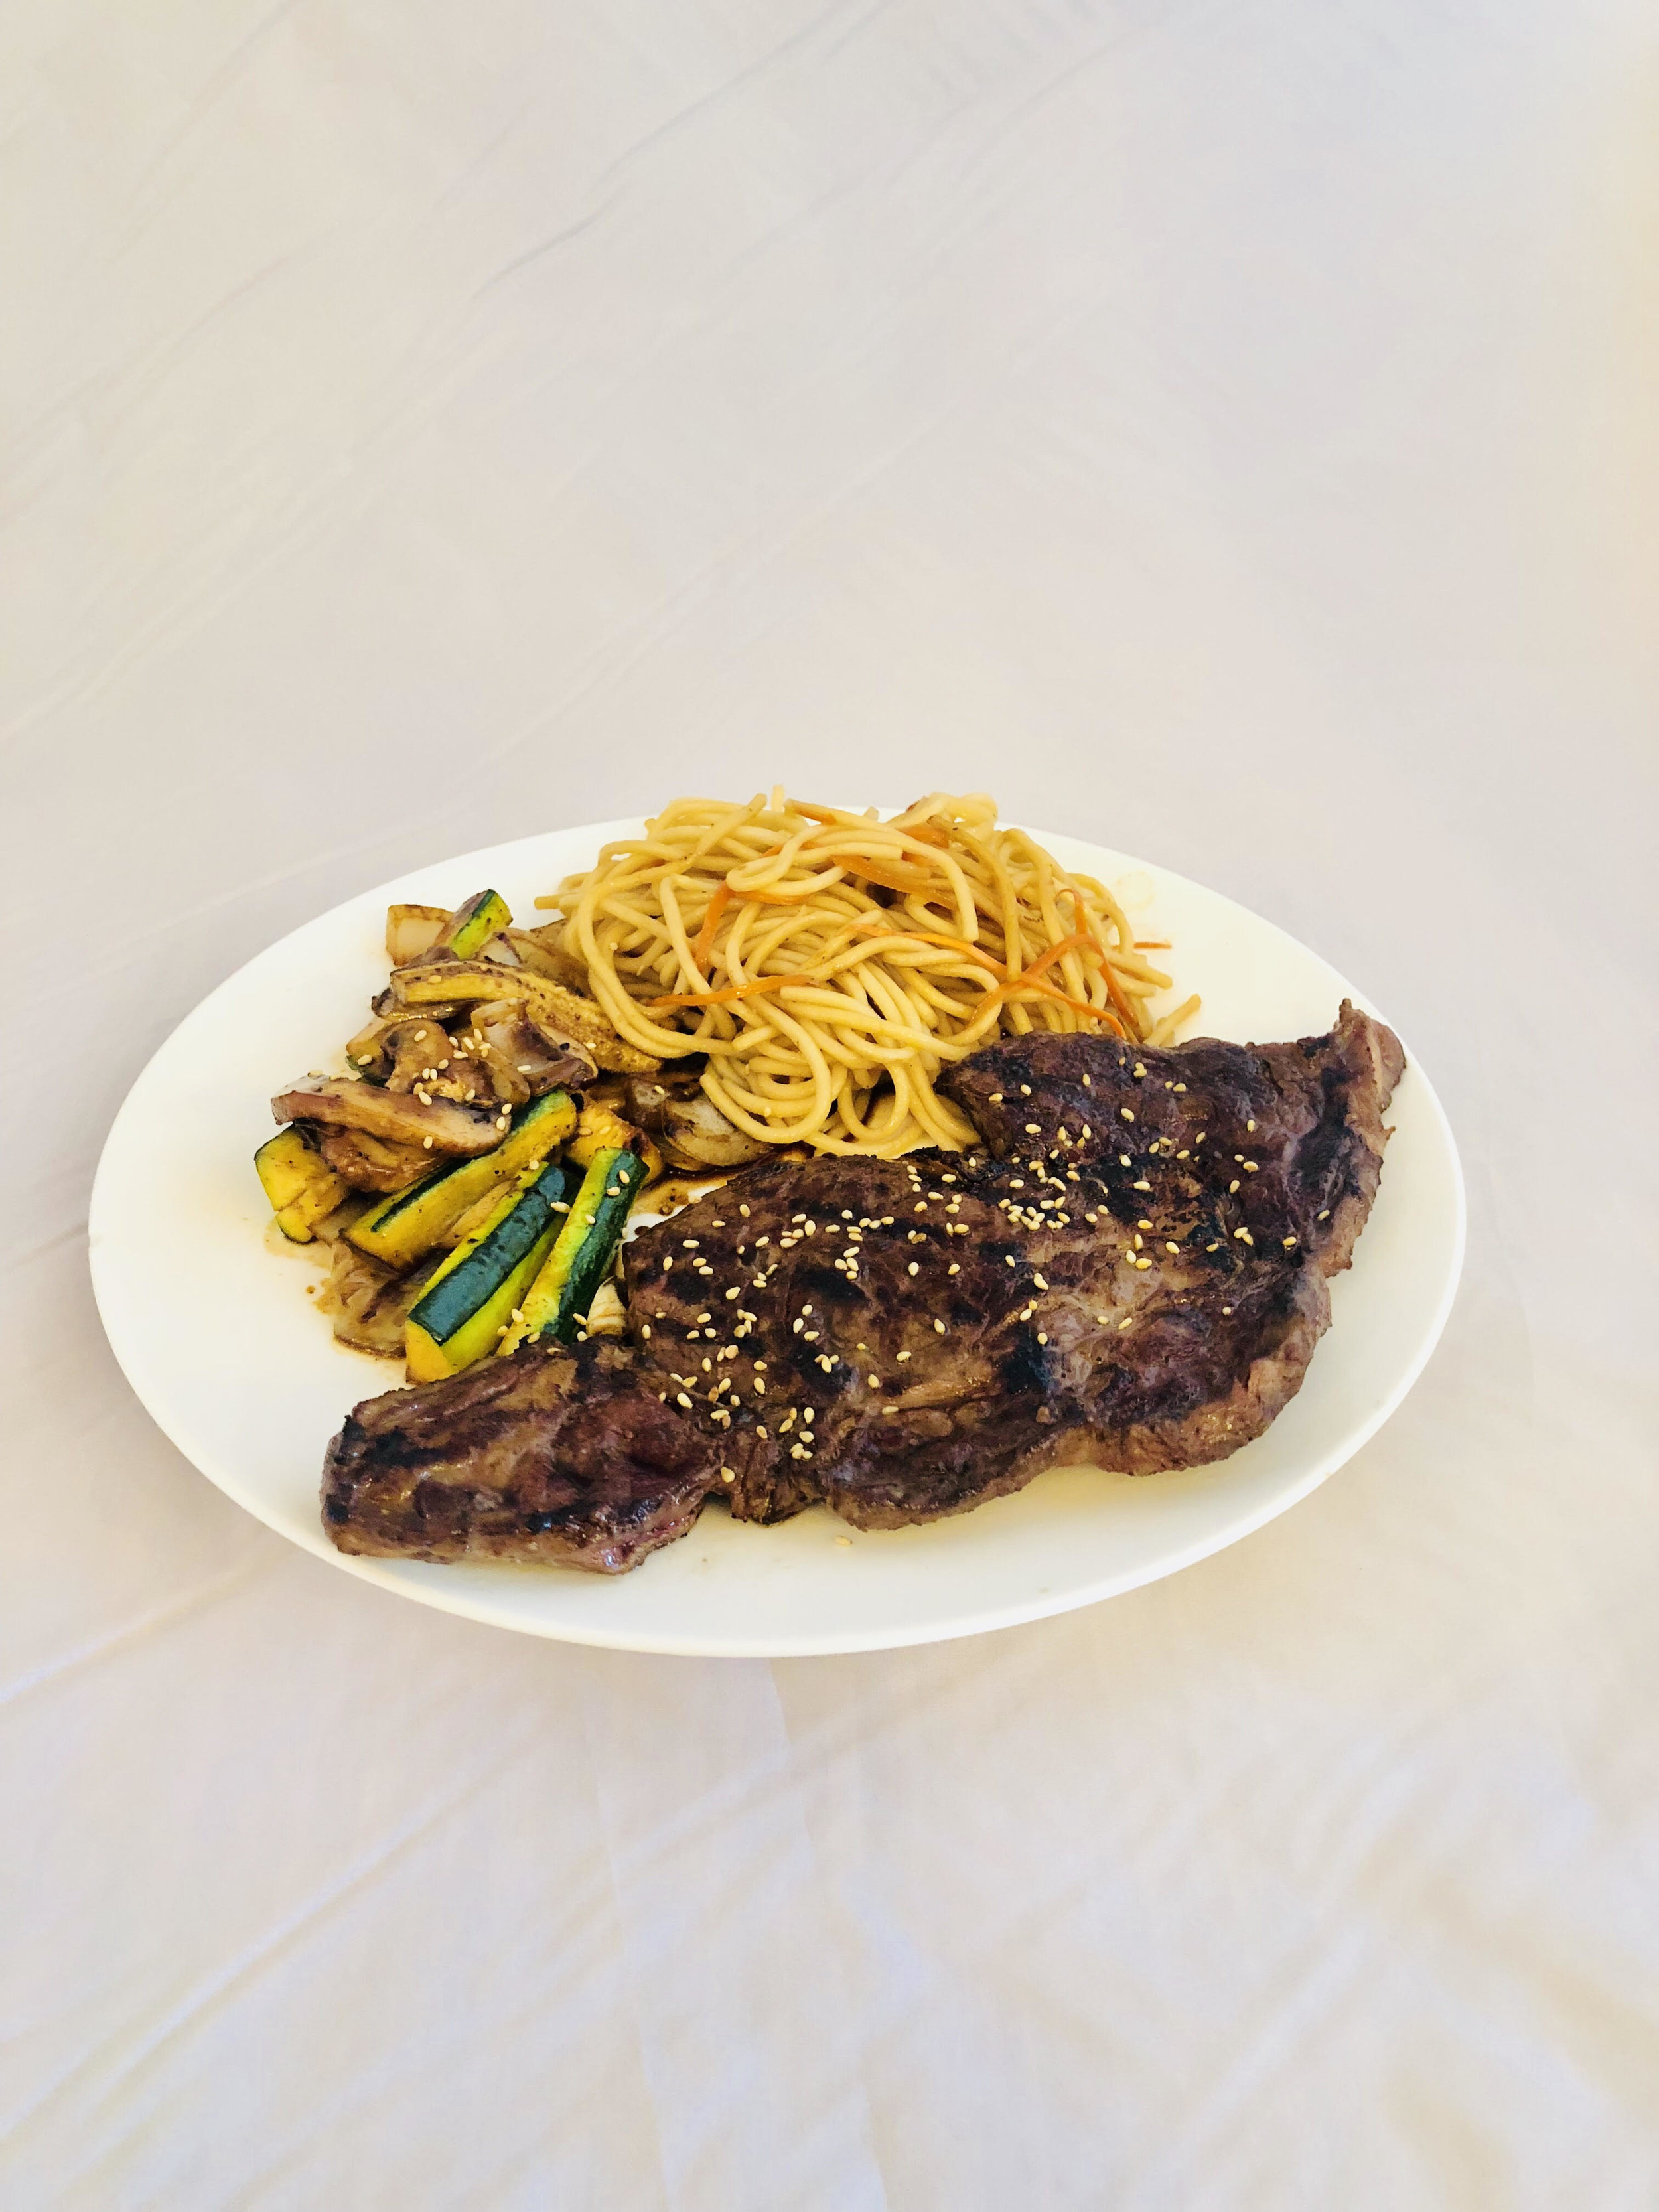 Ribeye and Noodles